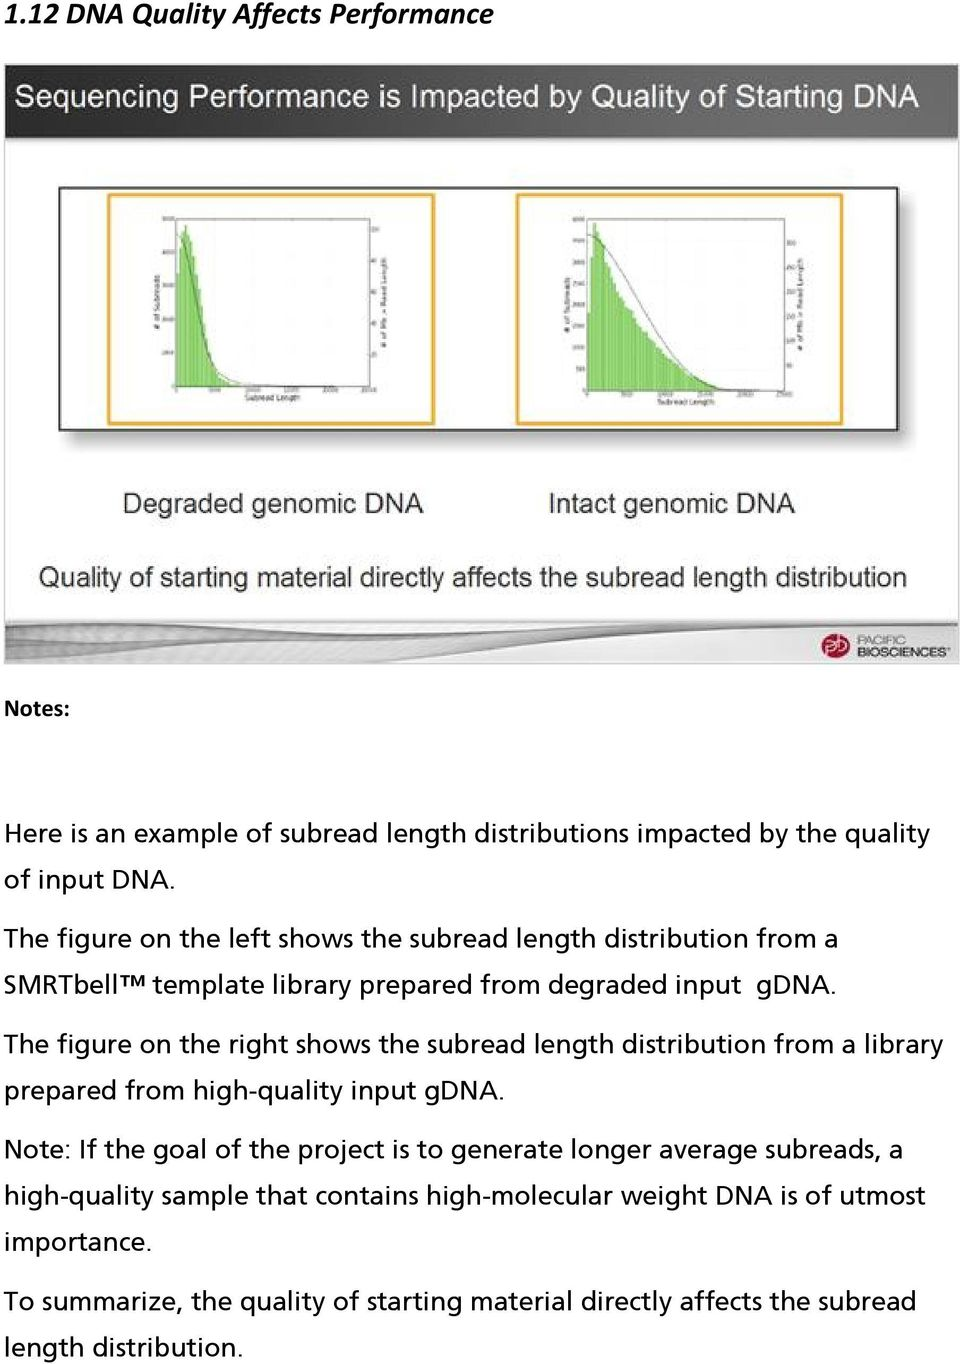 The figure on the right shows the subread length distribution from a library prepared from high-quality input gdna.